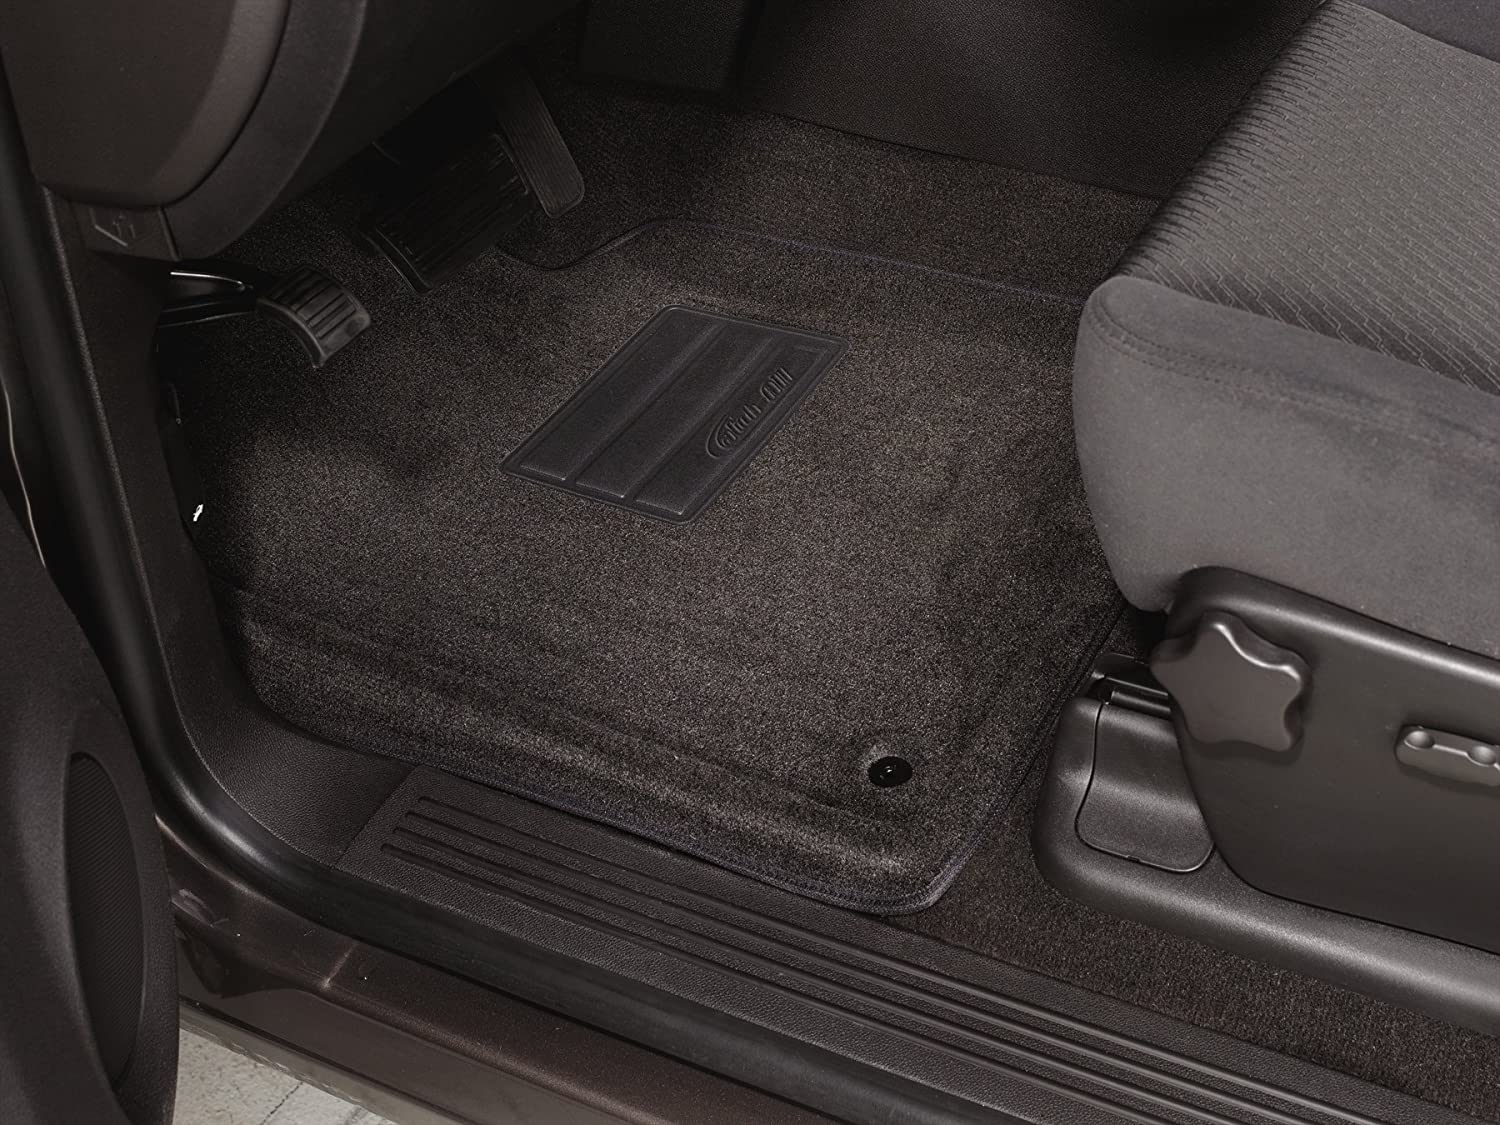 Lund 600331 Catch-All Carpet Charcoal Front Floor Mat Set of 2